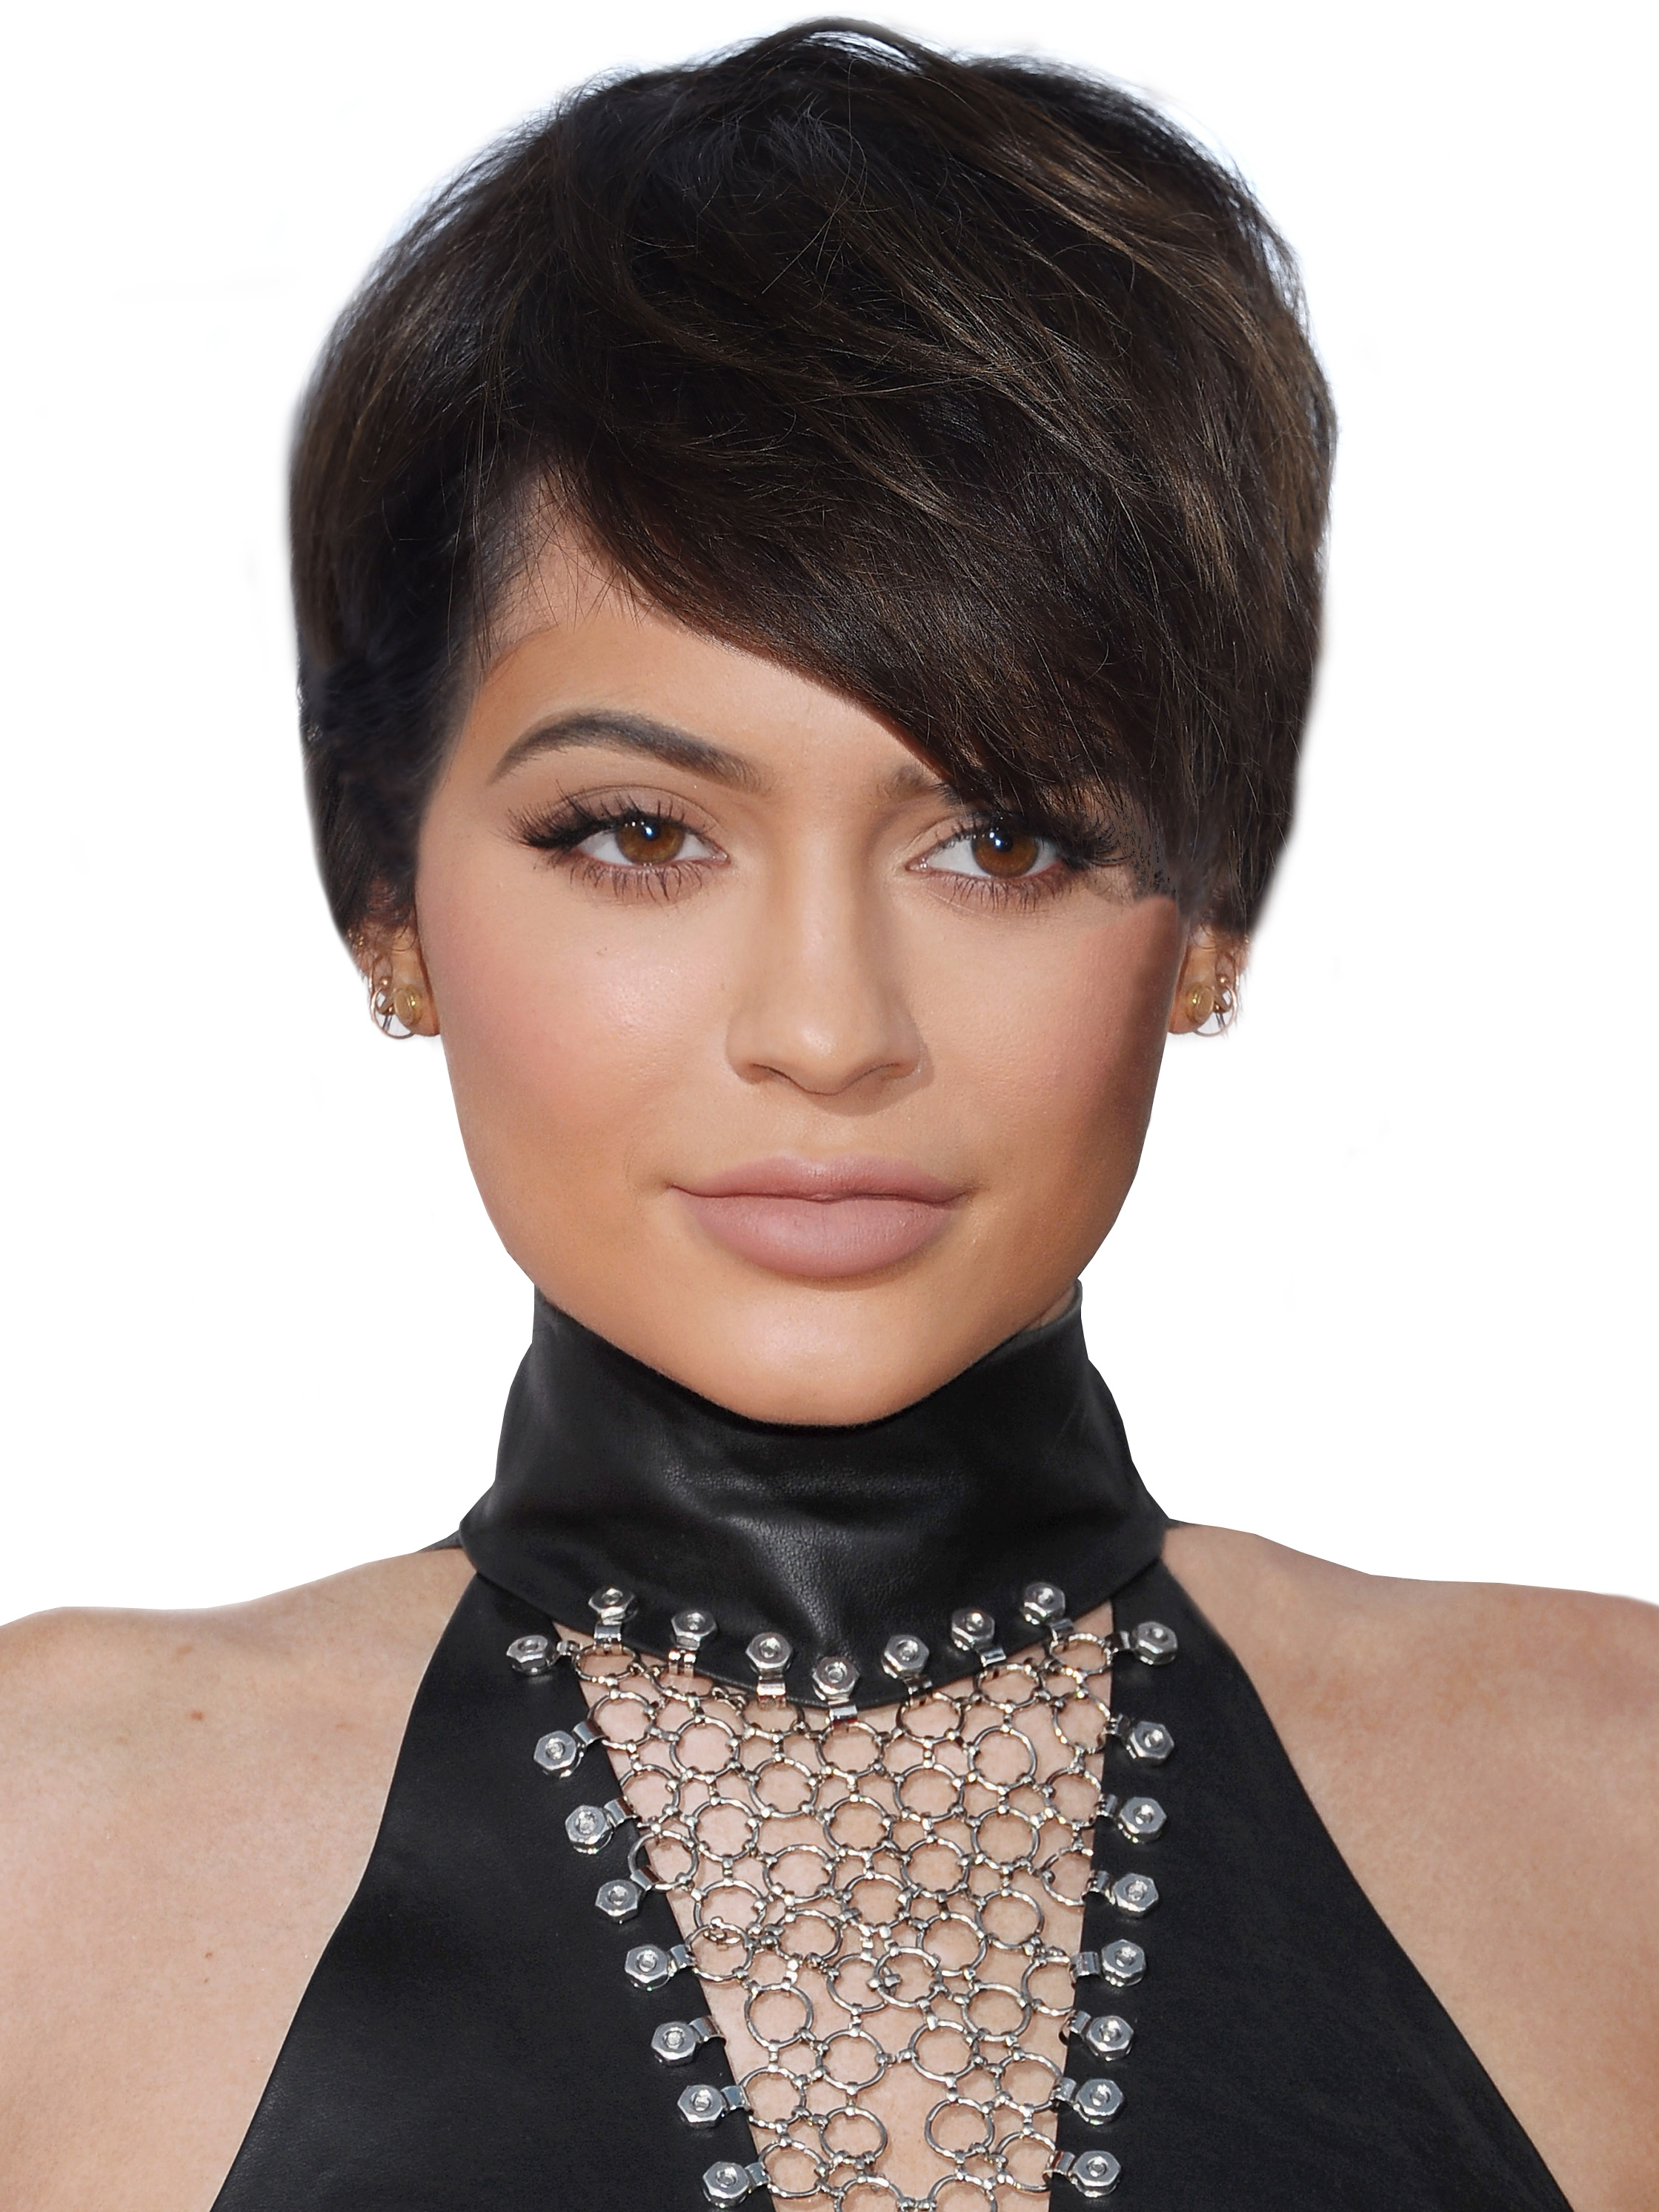 Kylie Jenner Says She Wants To 'try A Pixie Haircut' | People Pertaining To Kris Jenner Short Haircuts (View 16 of 25)